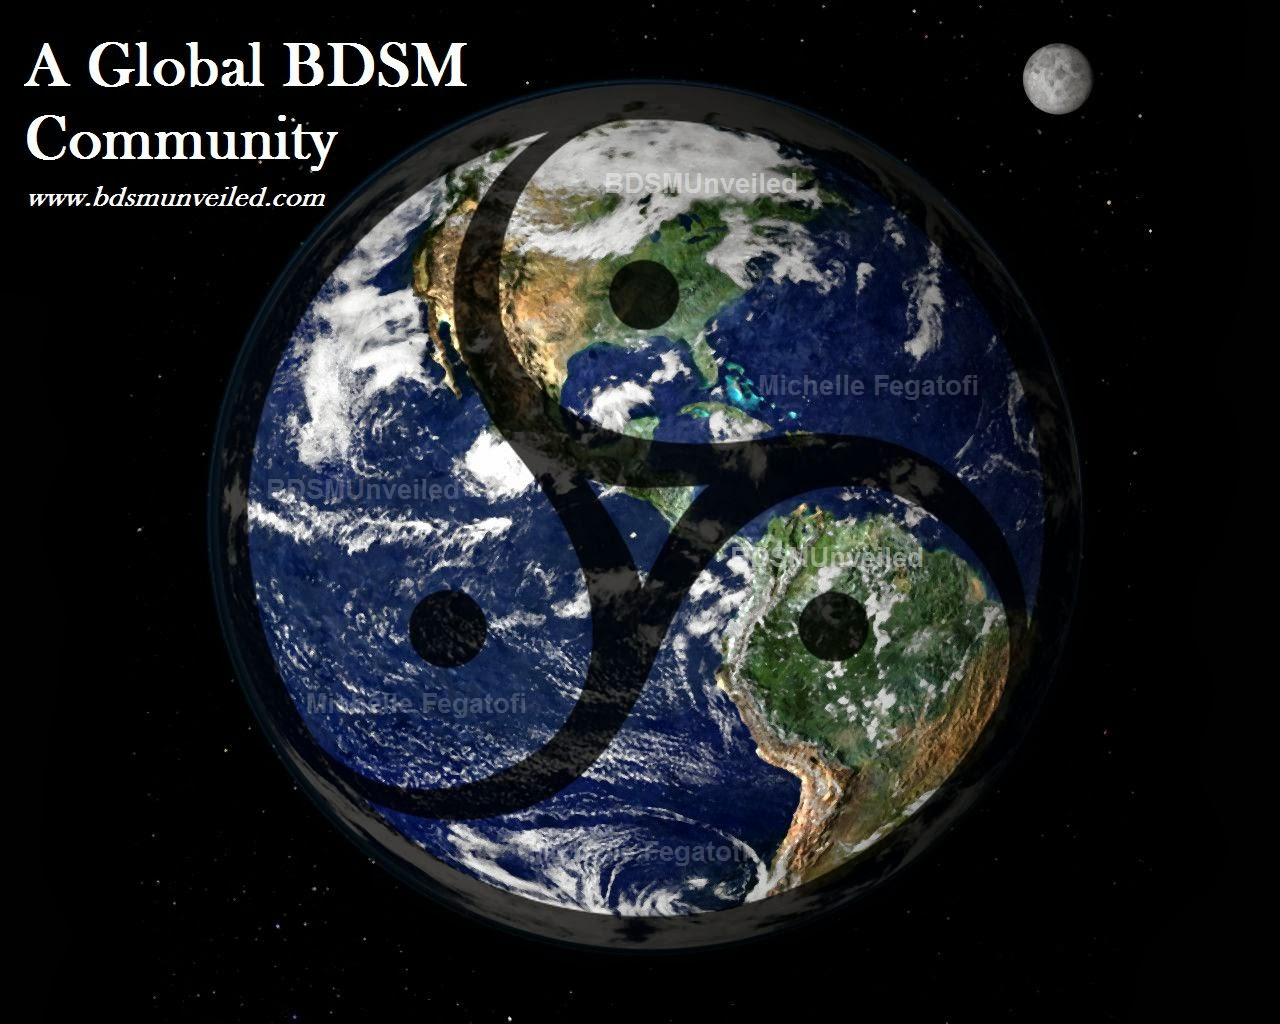 Global BDSM Community